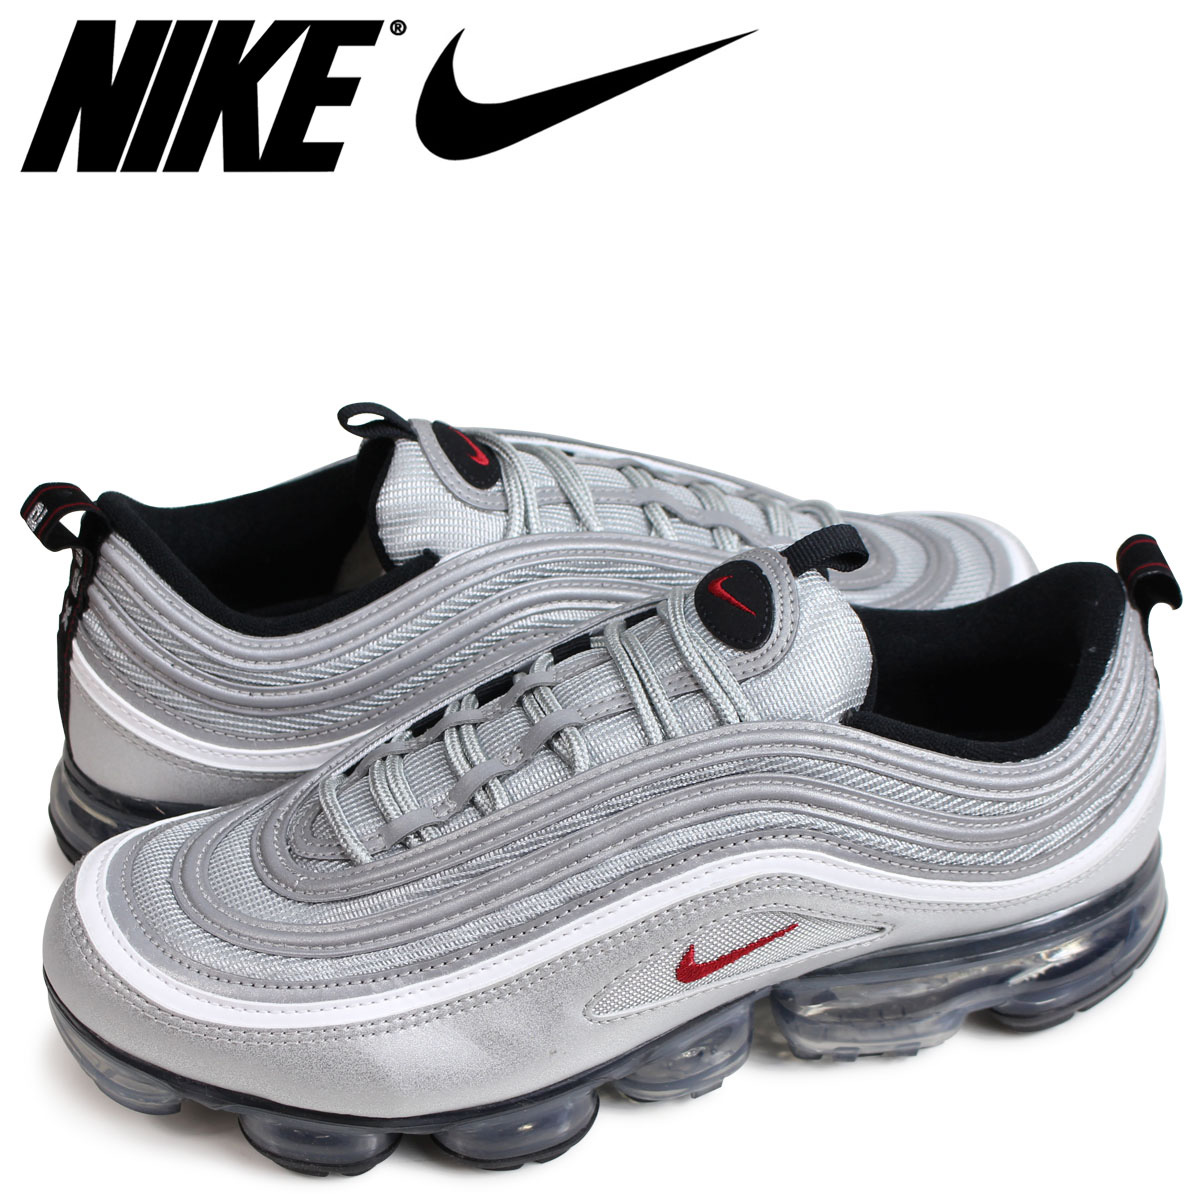 finest selection 2a317 ebf57 NIKE AIR VAPORMAX 97 Nike air vapor max 97 sneakers men silver AJ7291-002